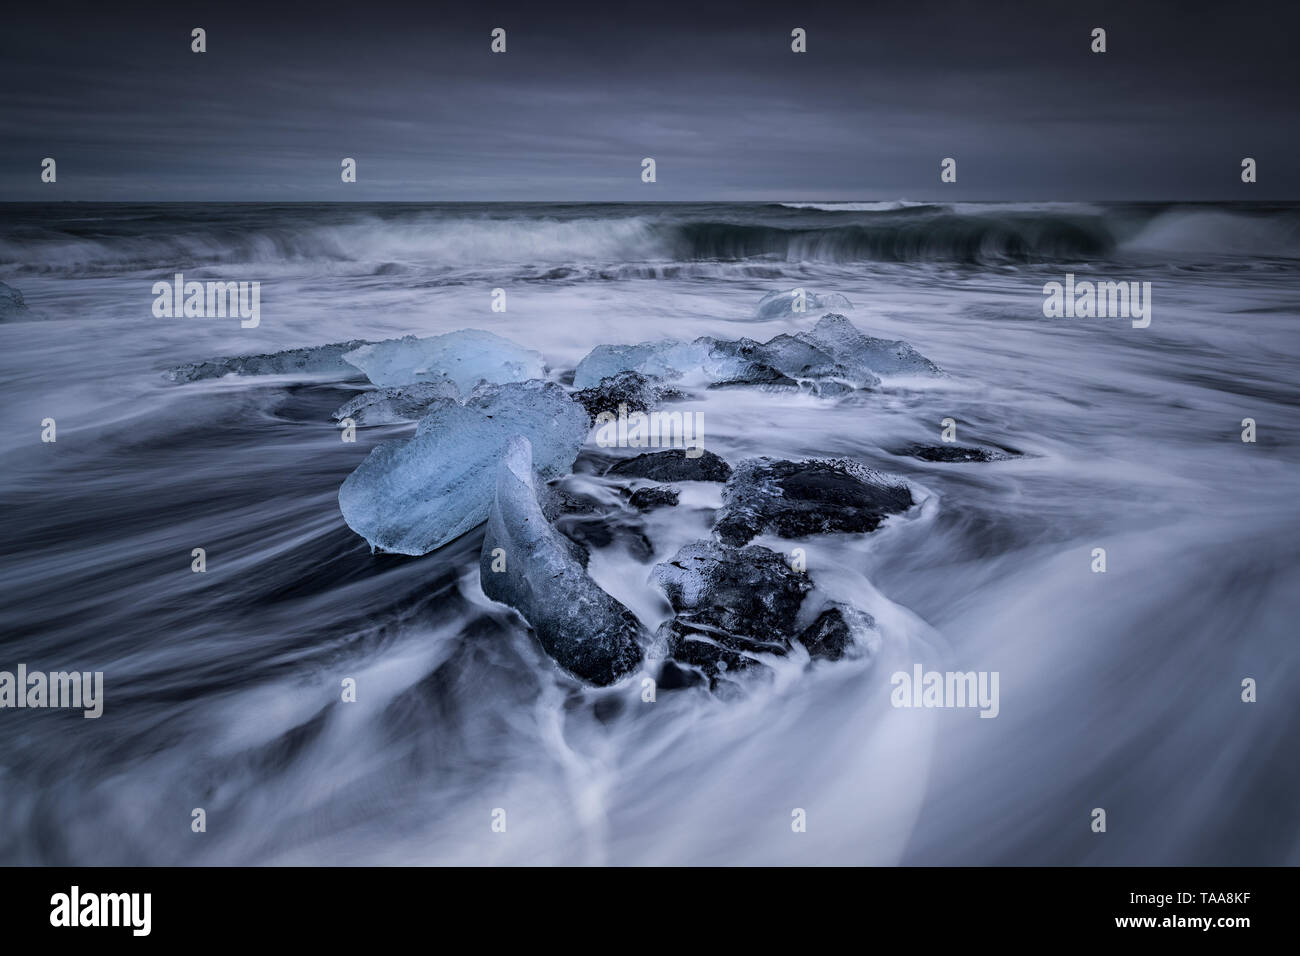 Sea Drifts in around the Icebergs and the Glacial ice that gets swept up on the beach on the black sands at Jokulsarlon, Iceland Stock Photo